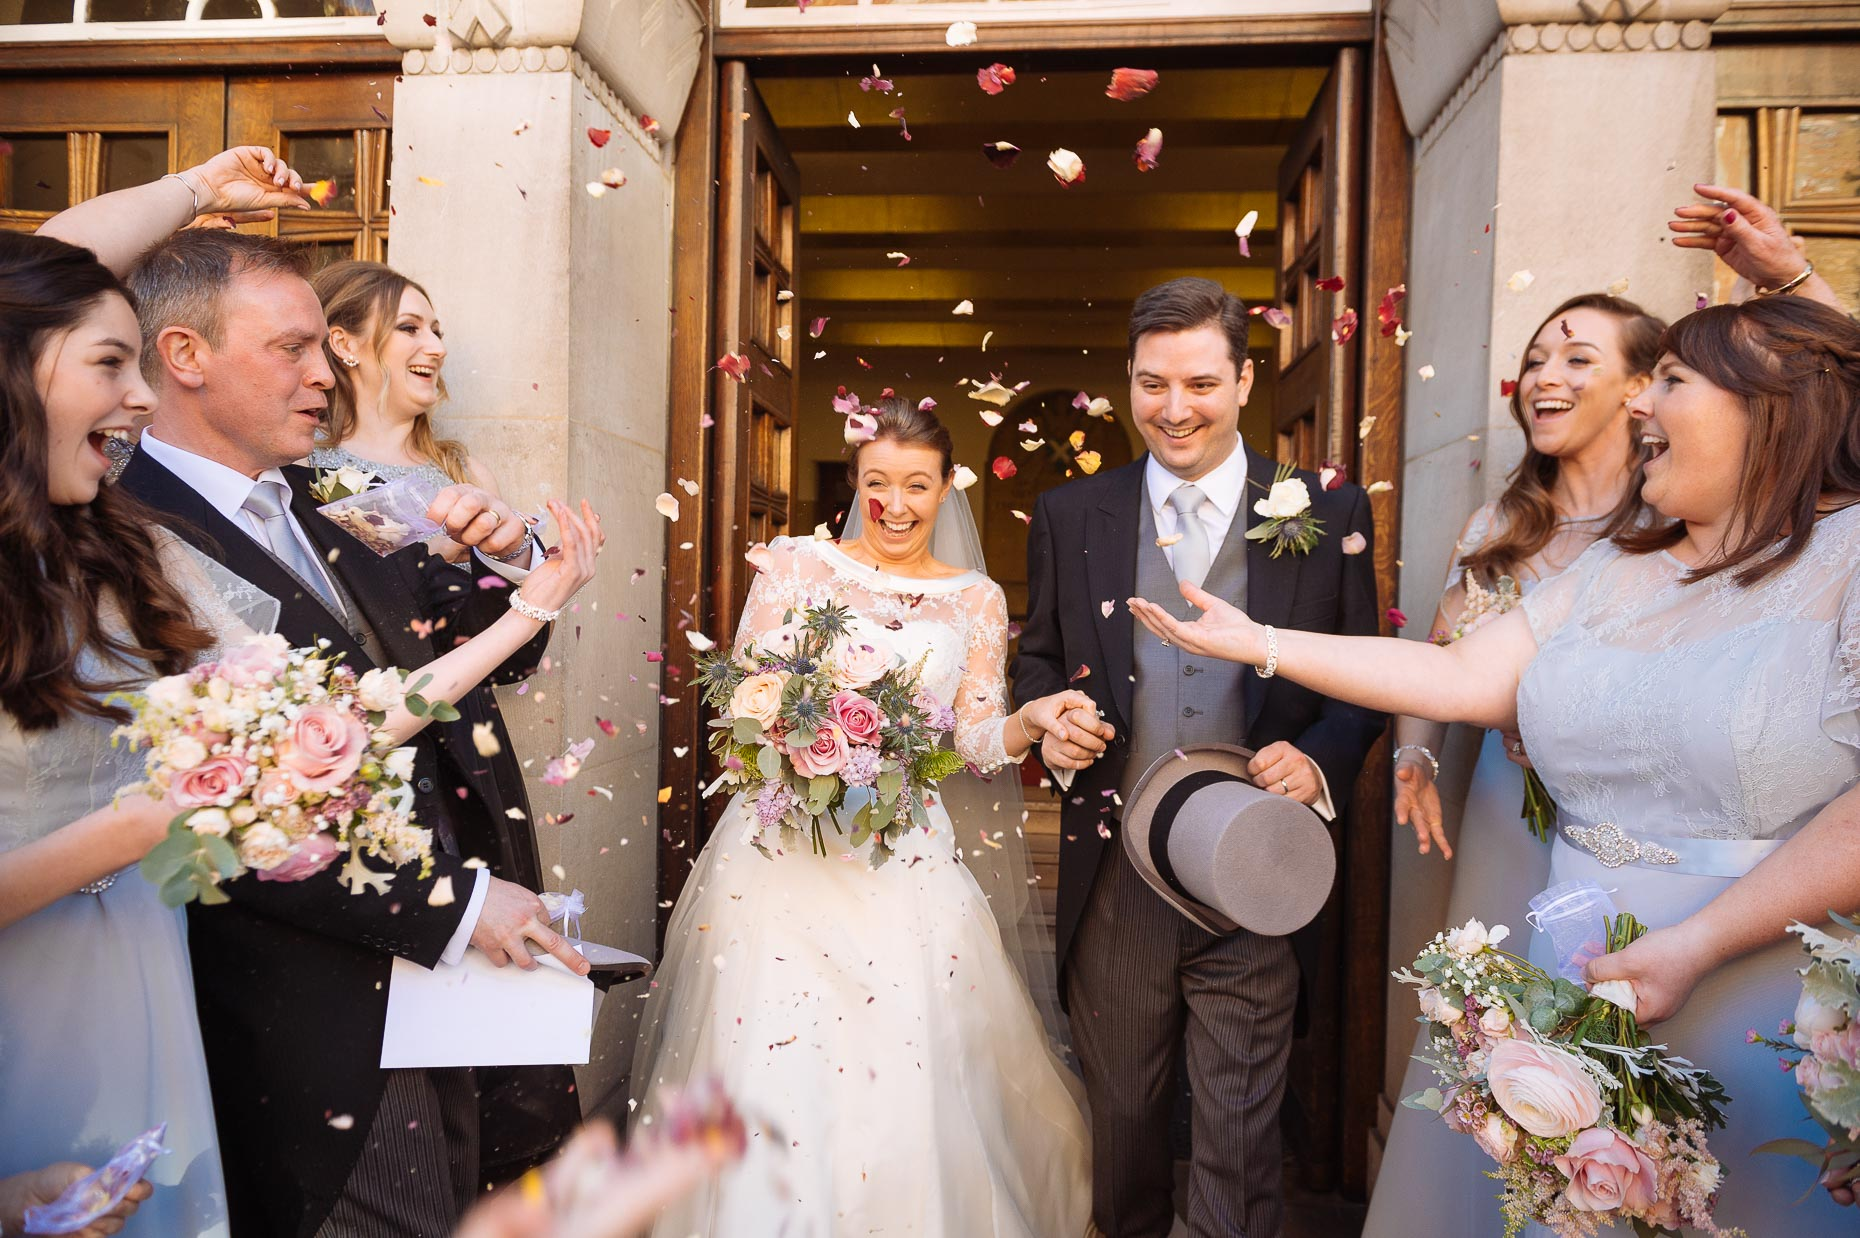 st-columba-church-wedding-confetti-london-photo-13